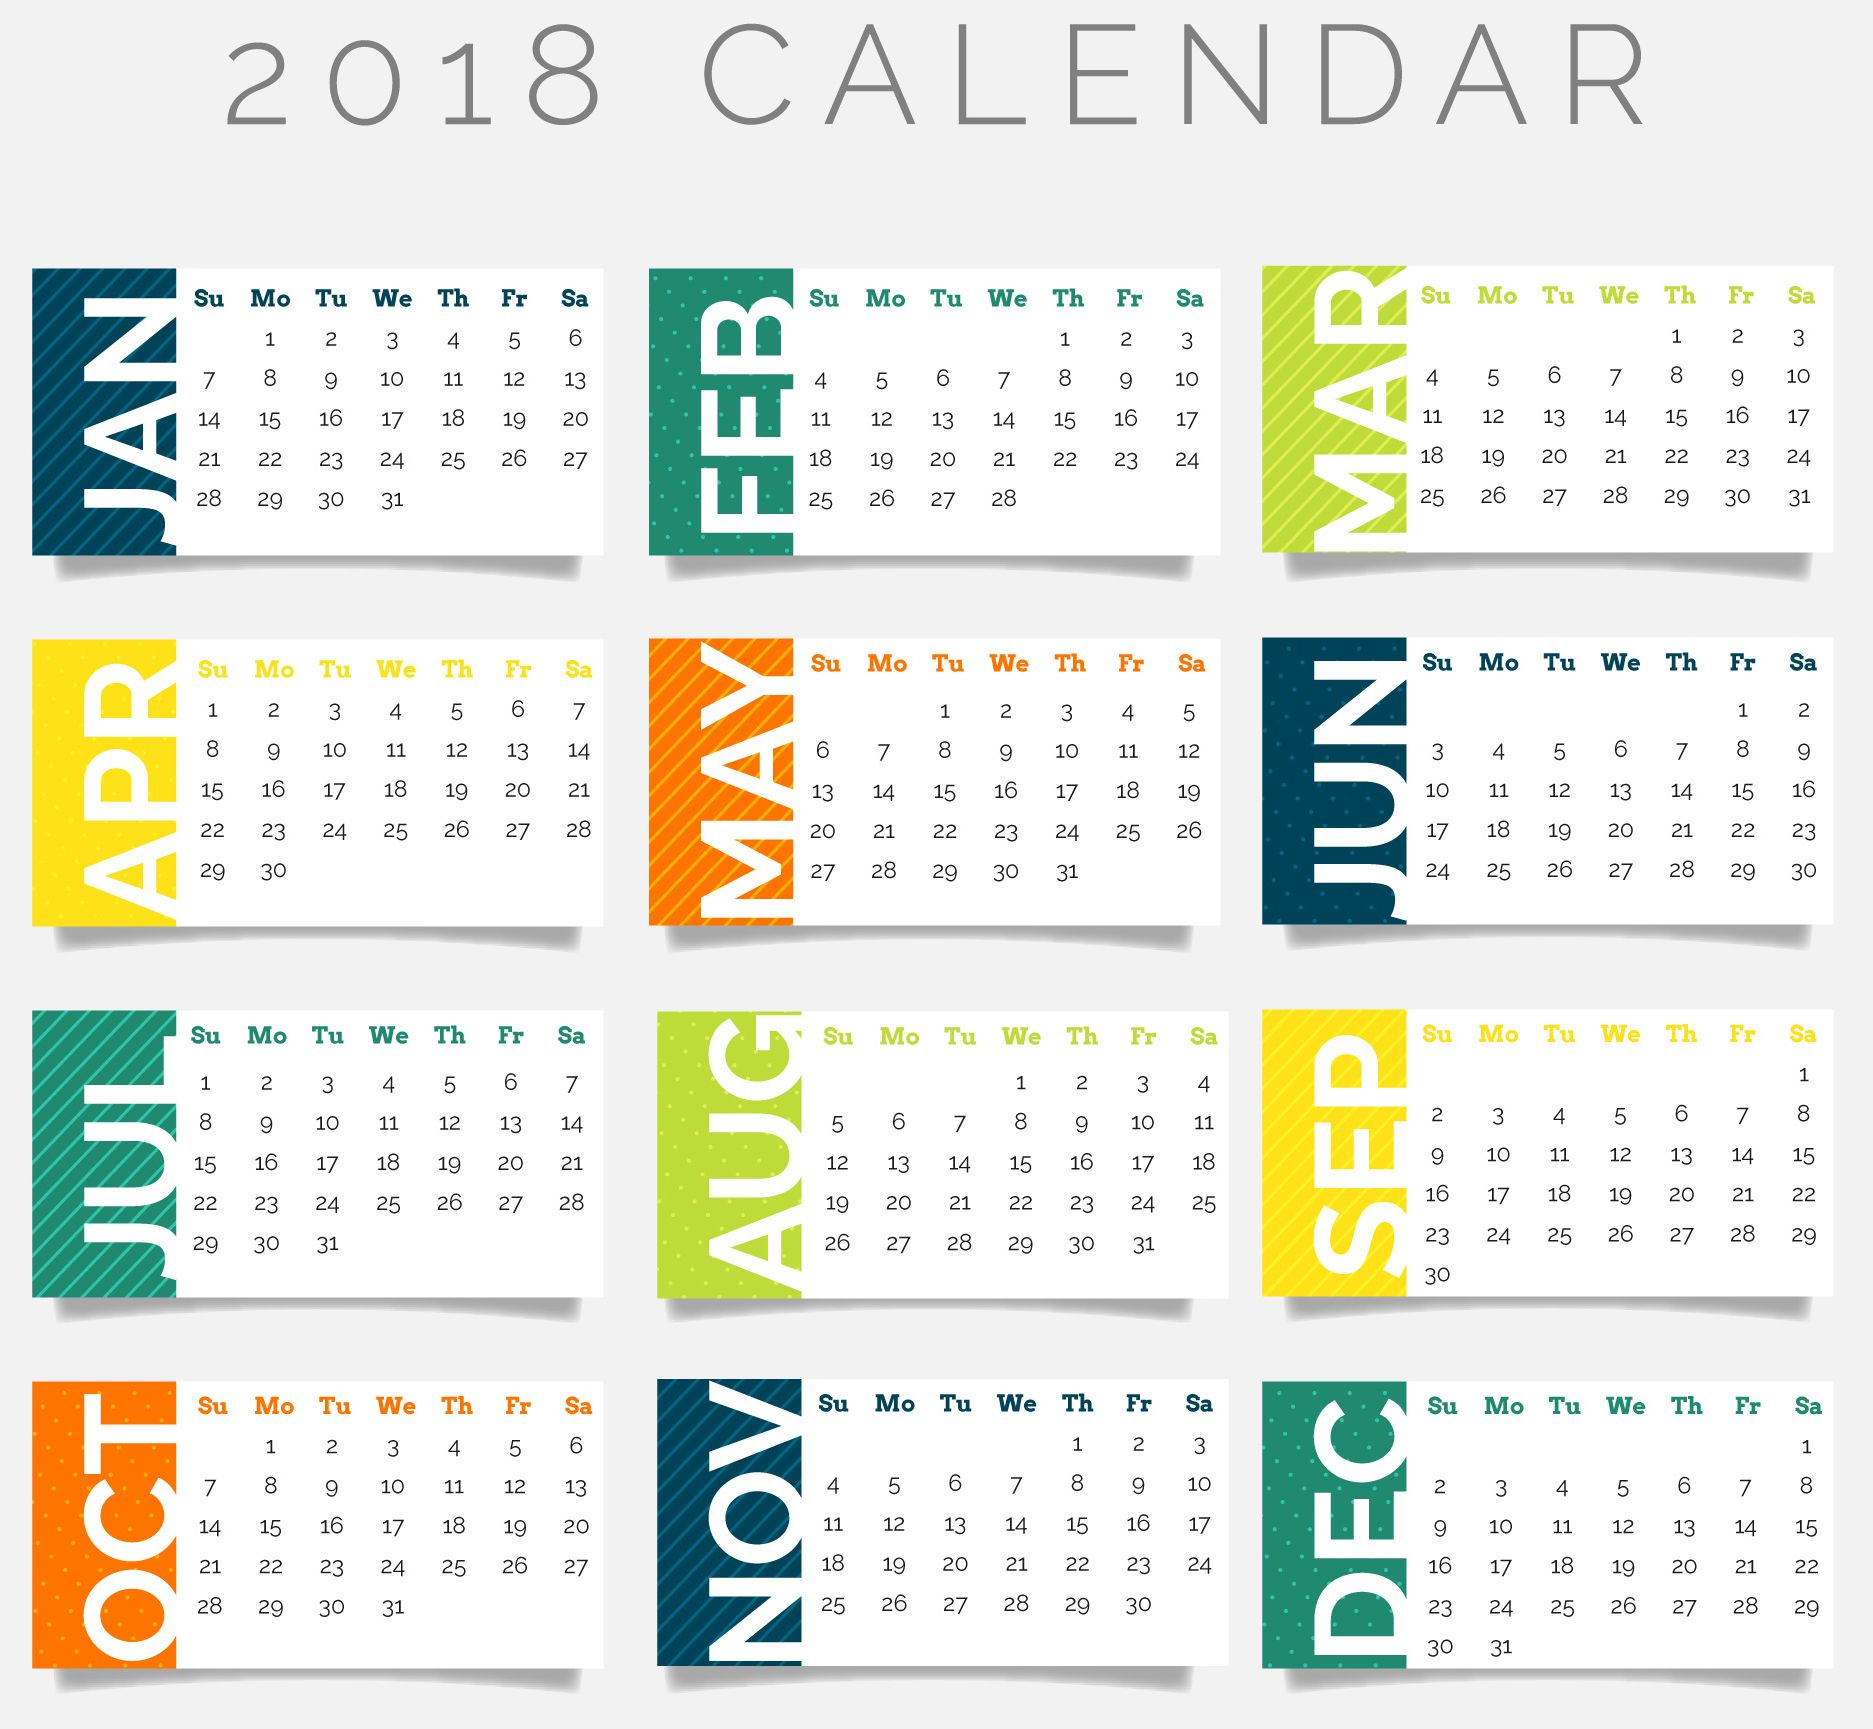 2018 Calendar Wallpapers HD CalendarBuzz 1873x1729